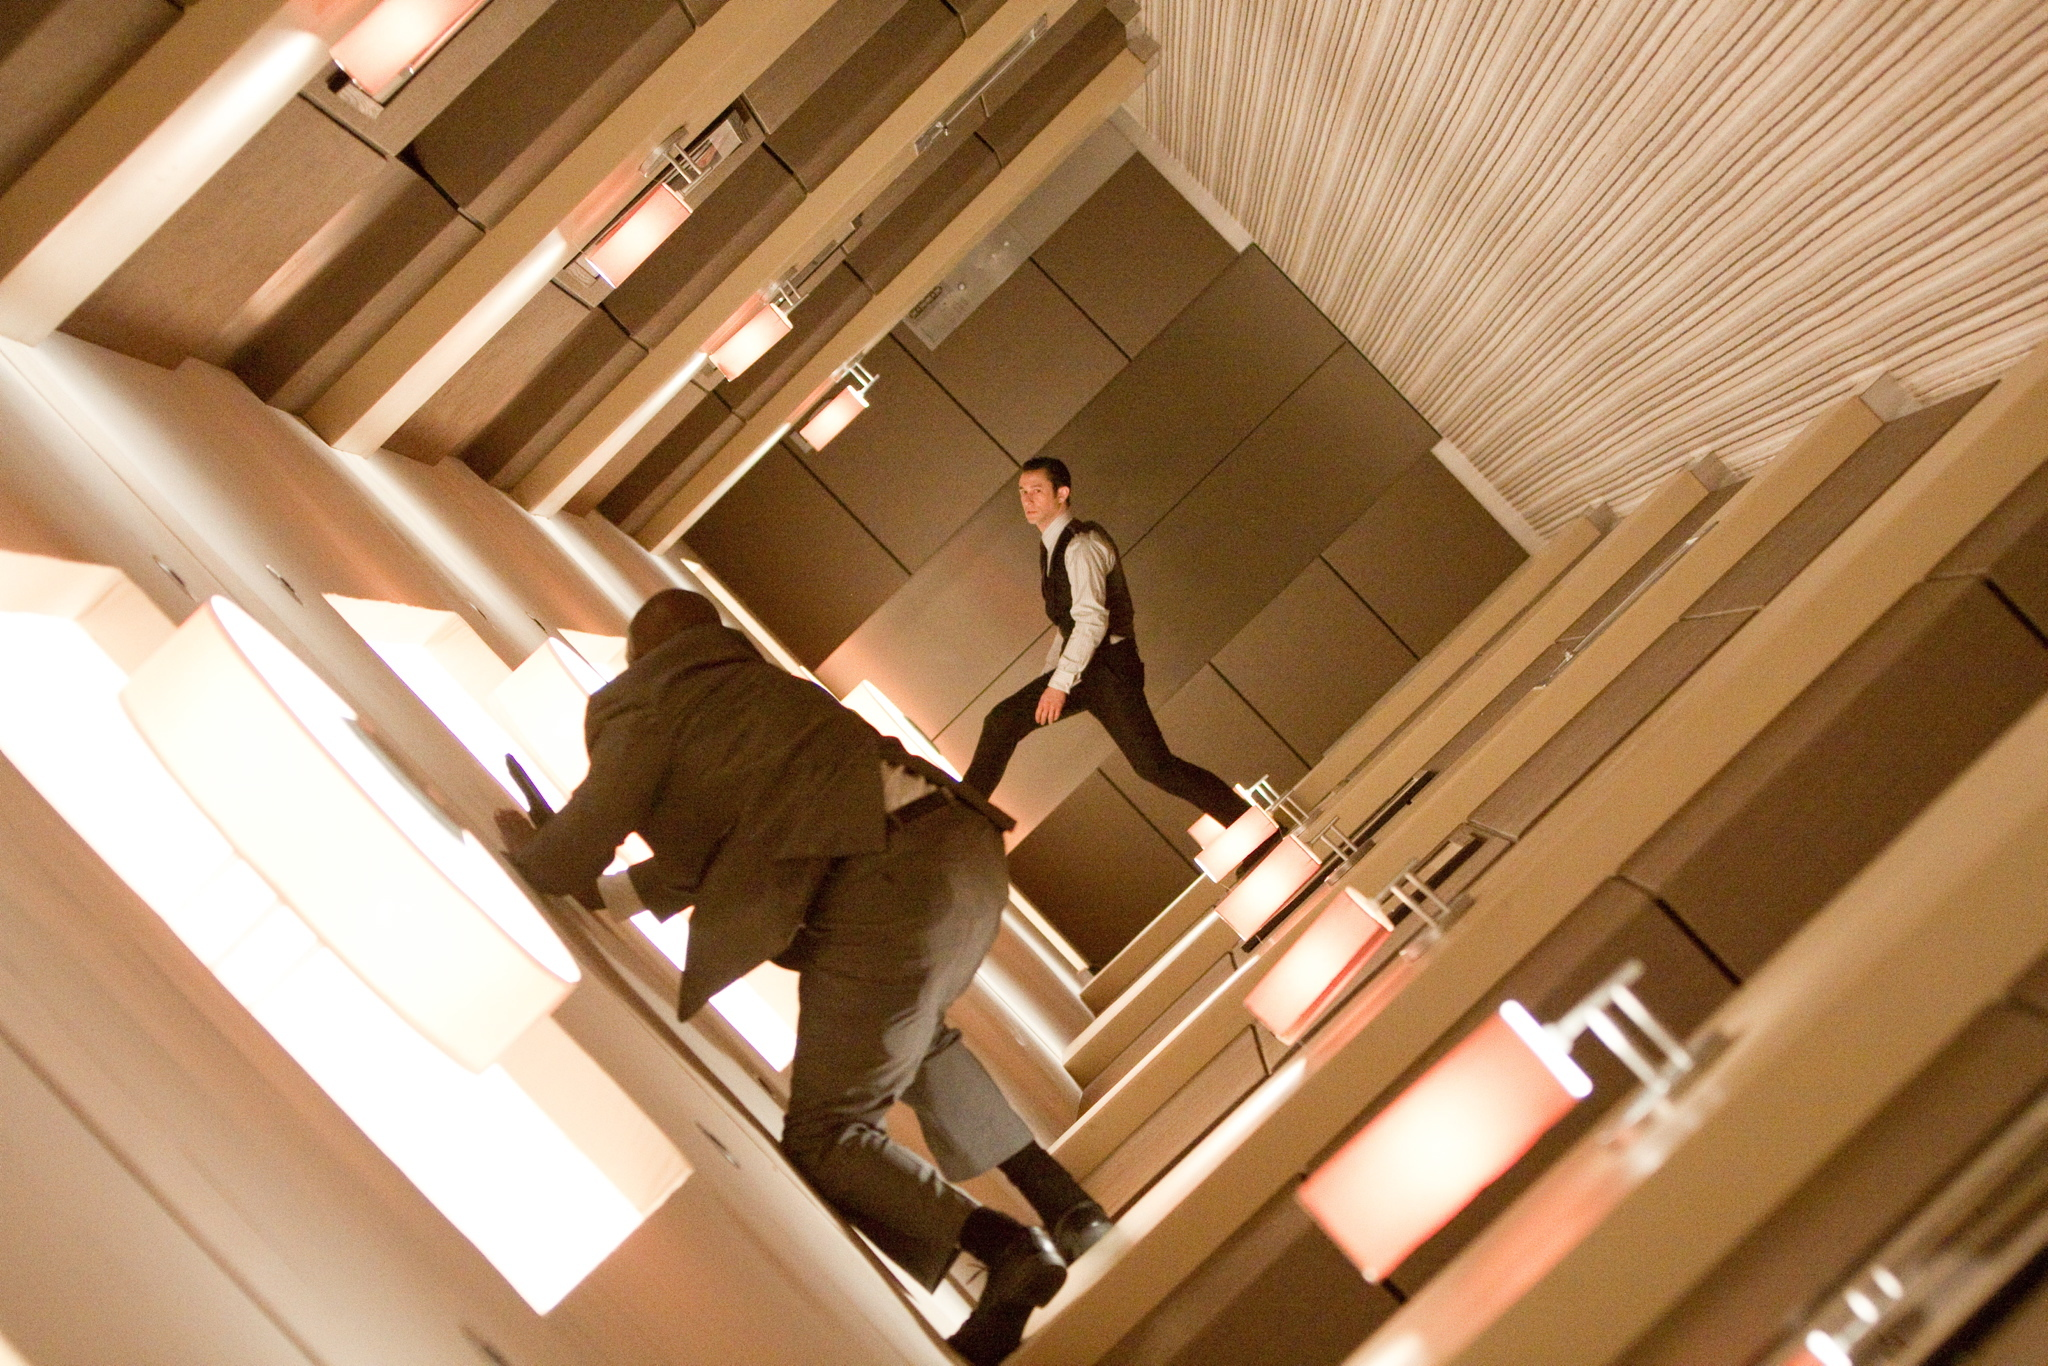 Sci-fi movie: Inception